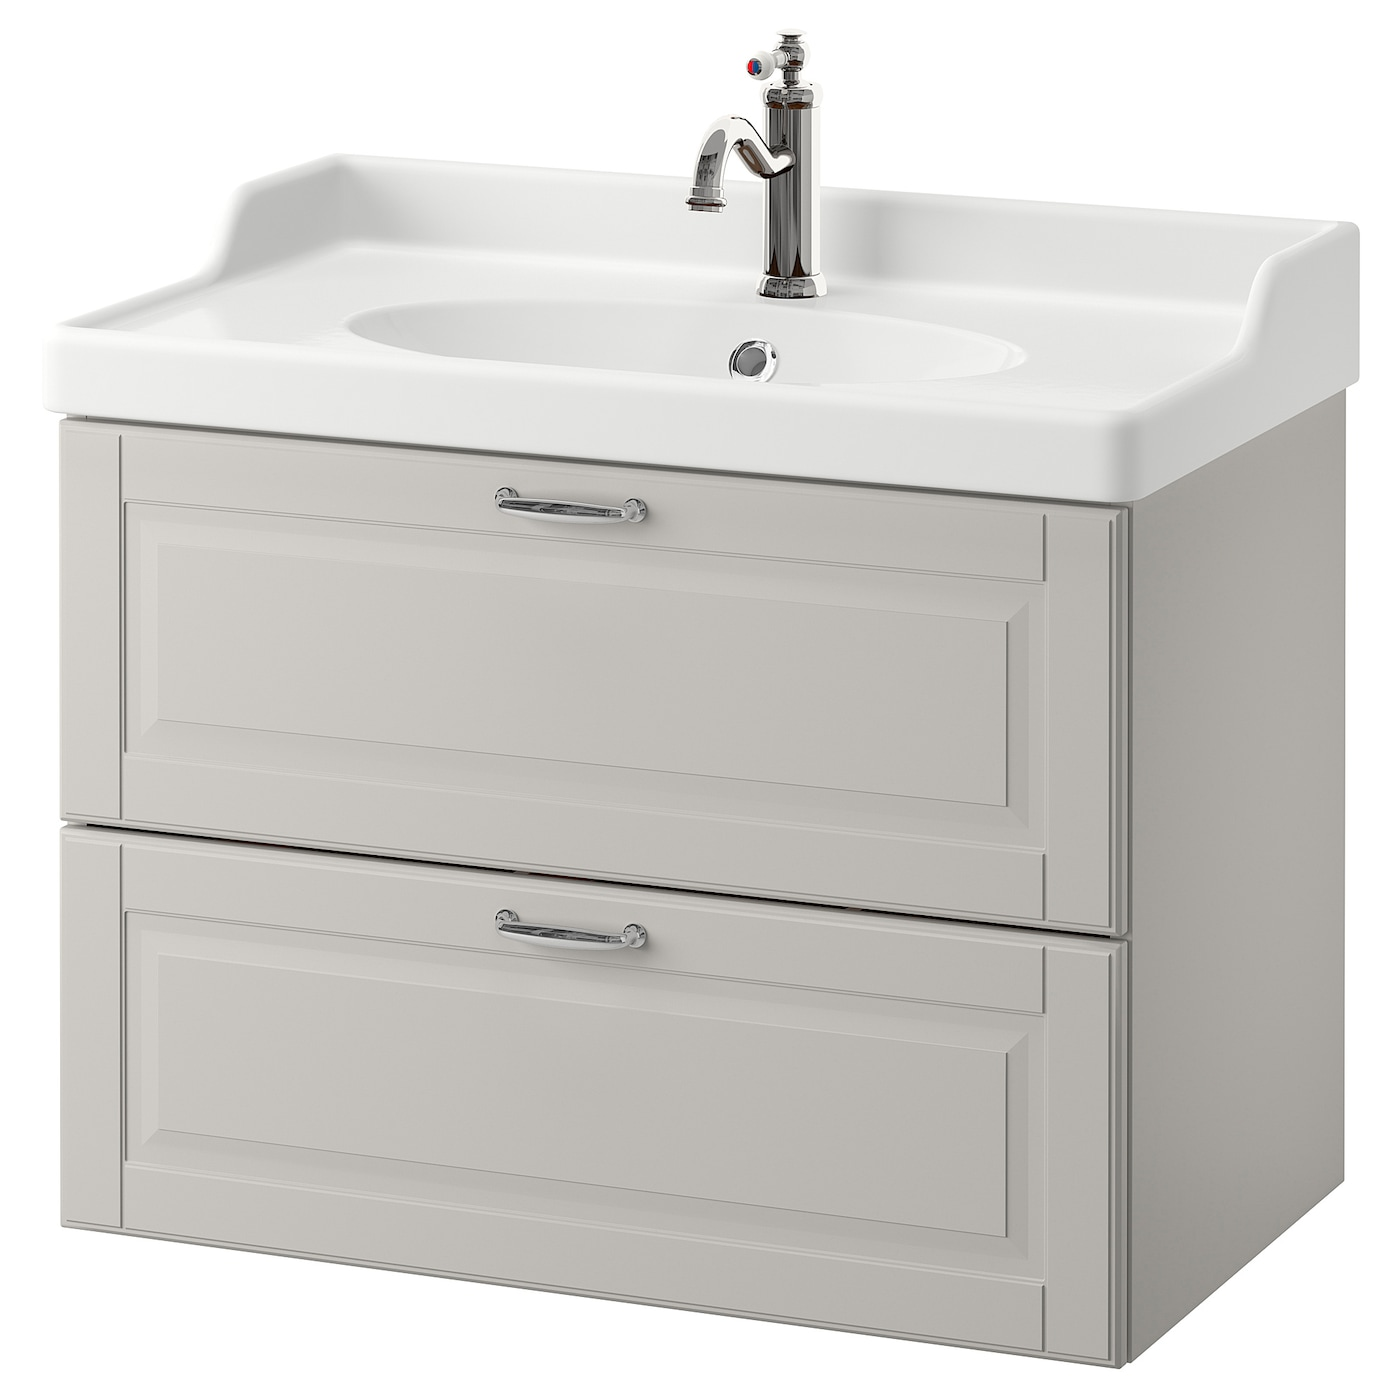 Vanity units sink cabinets wash stands ikea for Ikea vanities with sinks